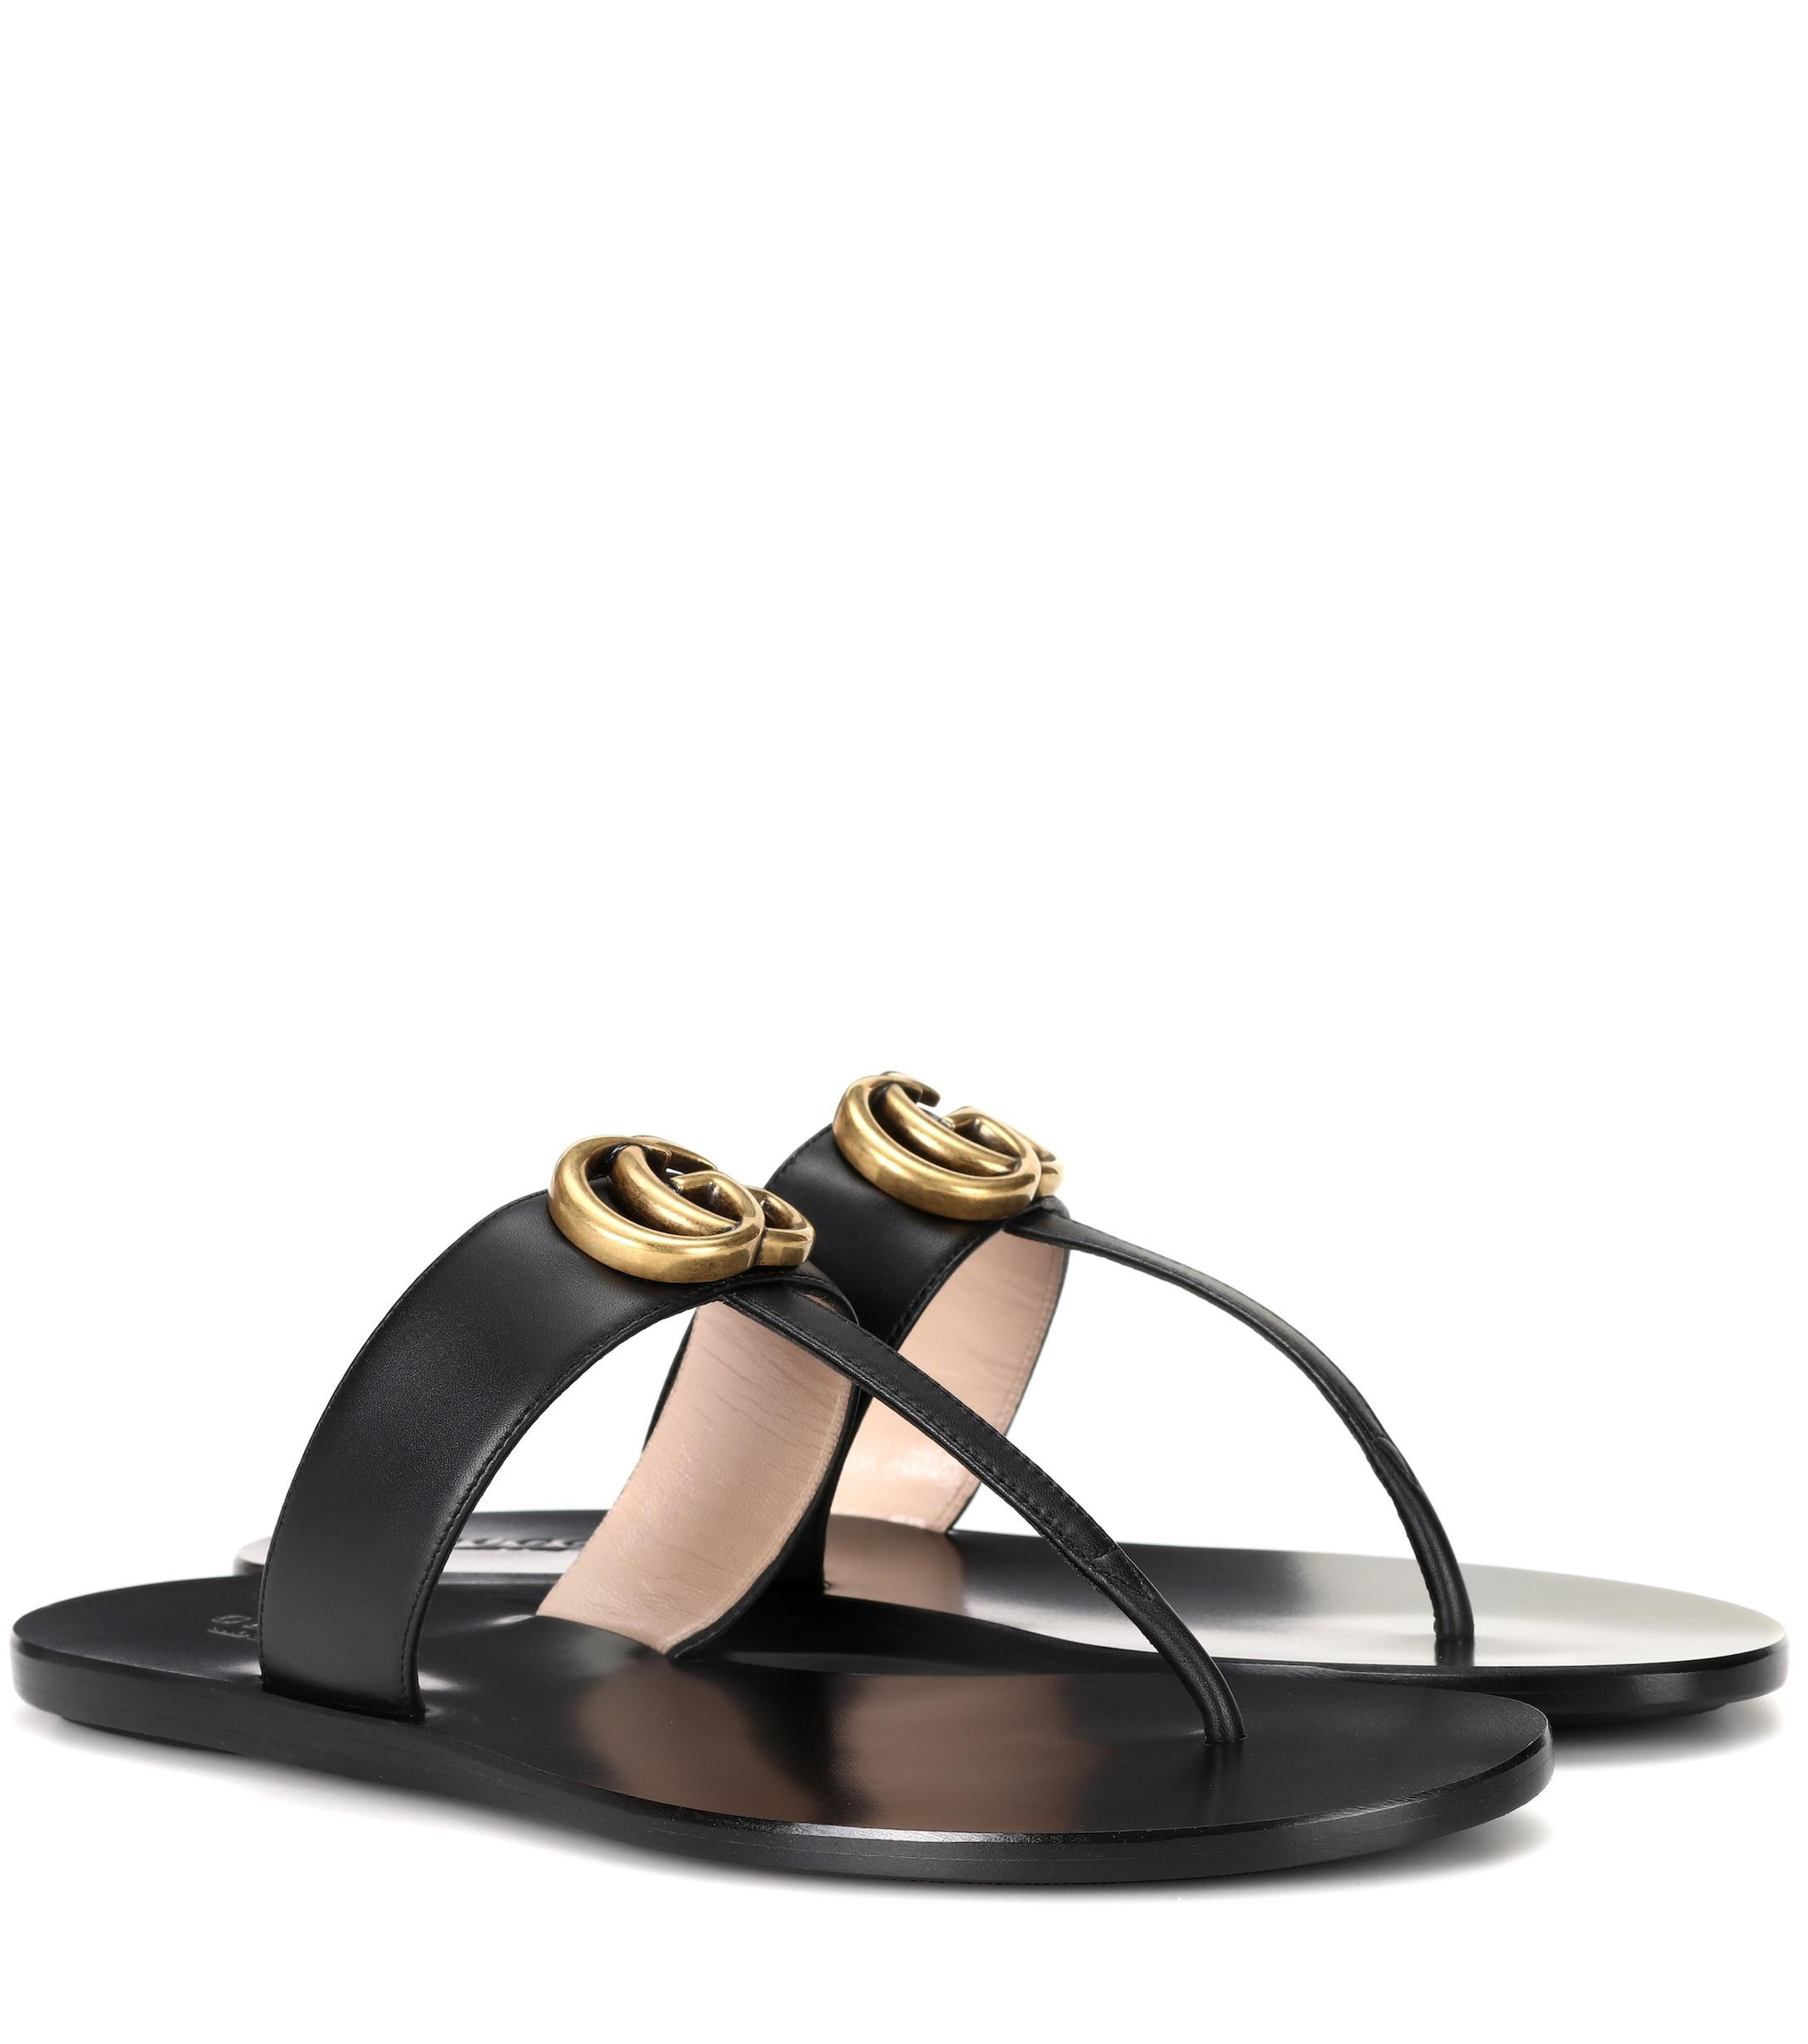 062816feb71 Gucci Double G Leather Sandals in Black - Lyst